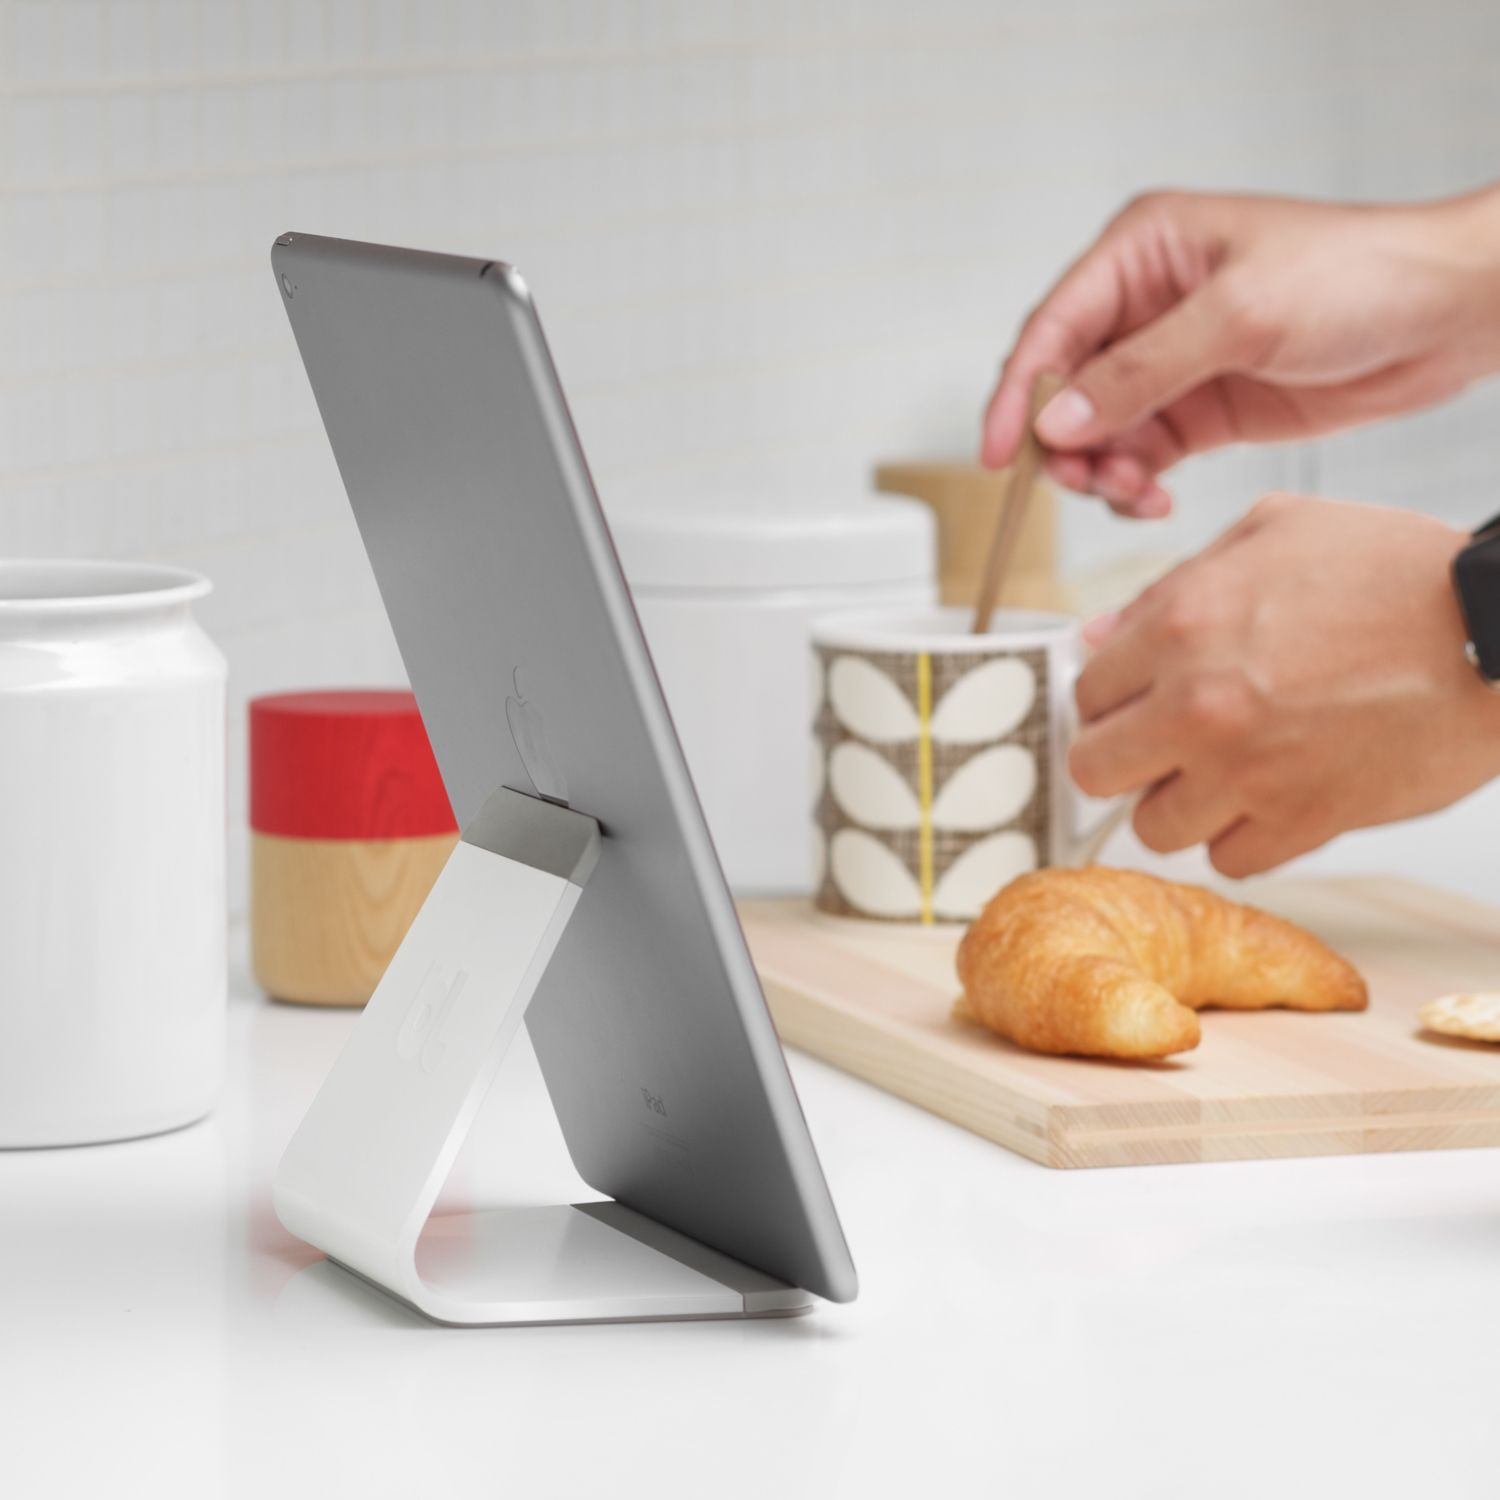 Tablet Küchenbrett Mika In 2019 Iphone Ipad Tablet Stand Ipad Stand Iphone Stand